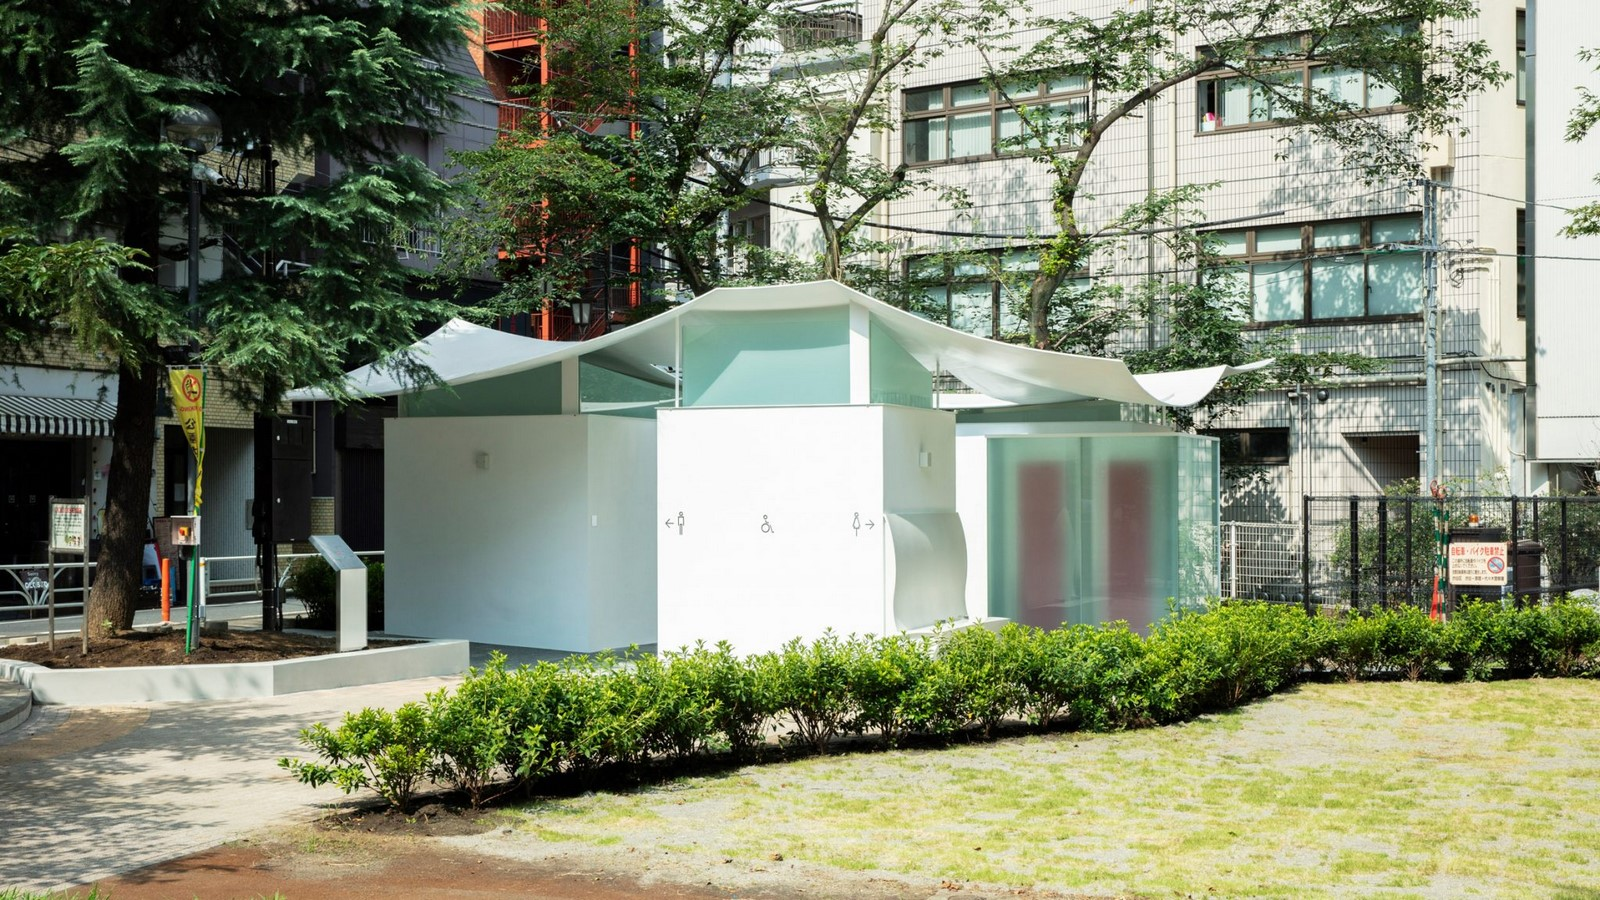 Fumikhiko Maki designs Toilet with the curved roof  'Squid Toilet' - Sheet2